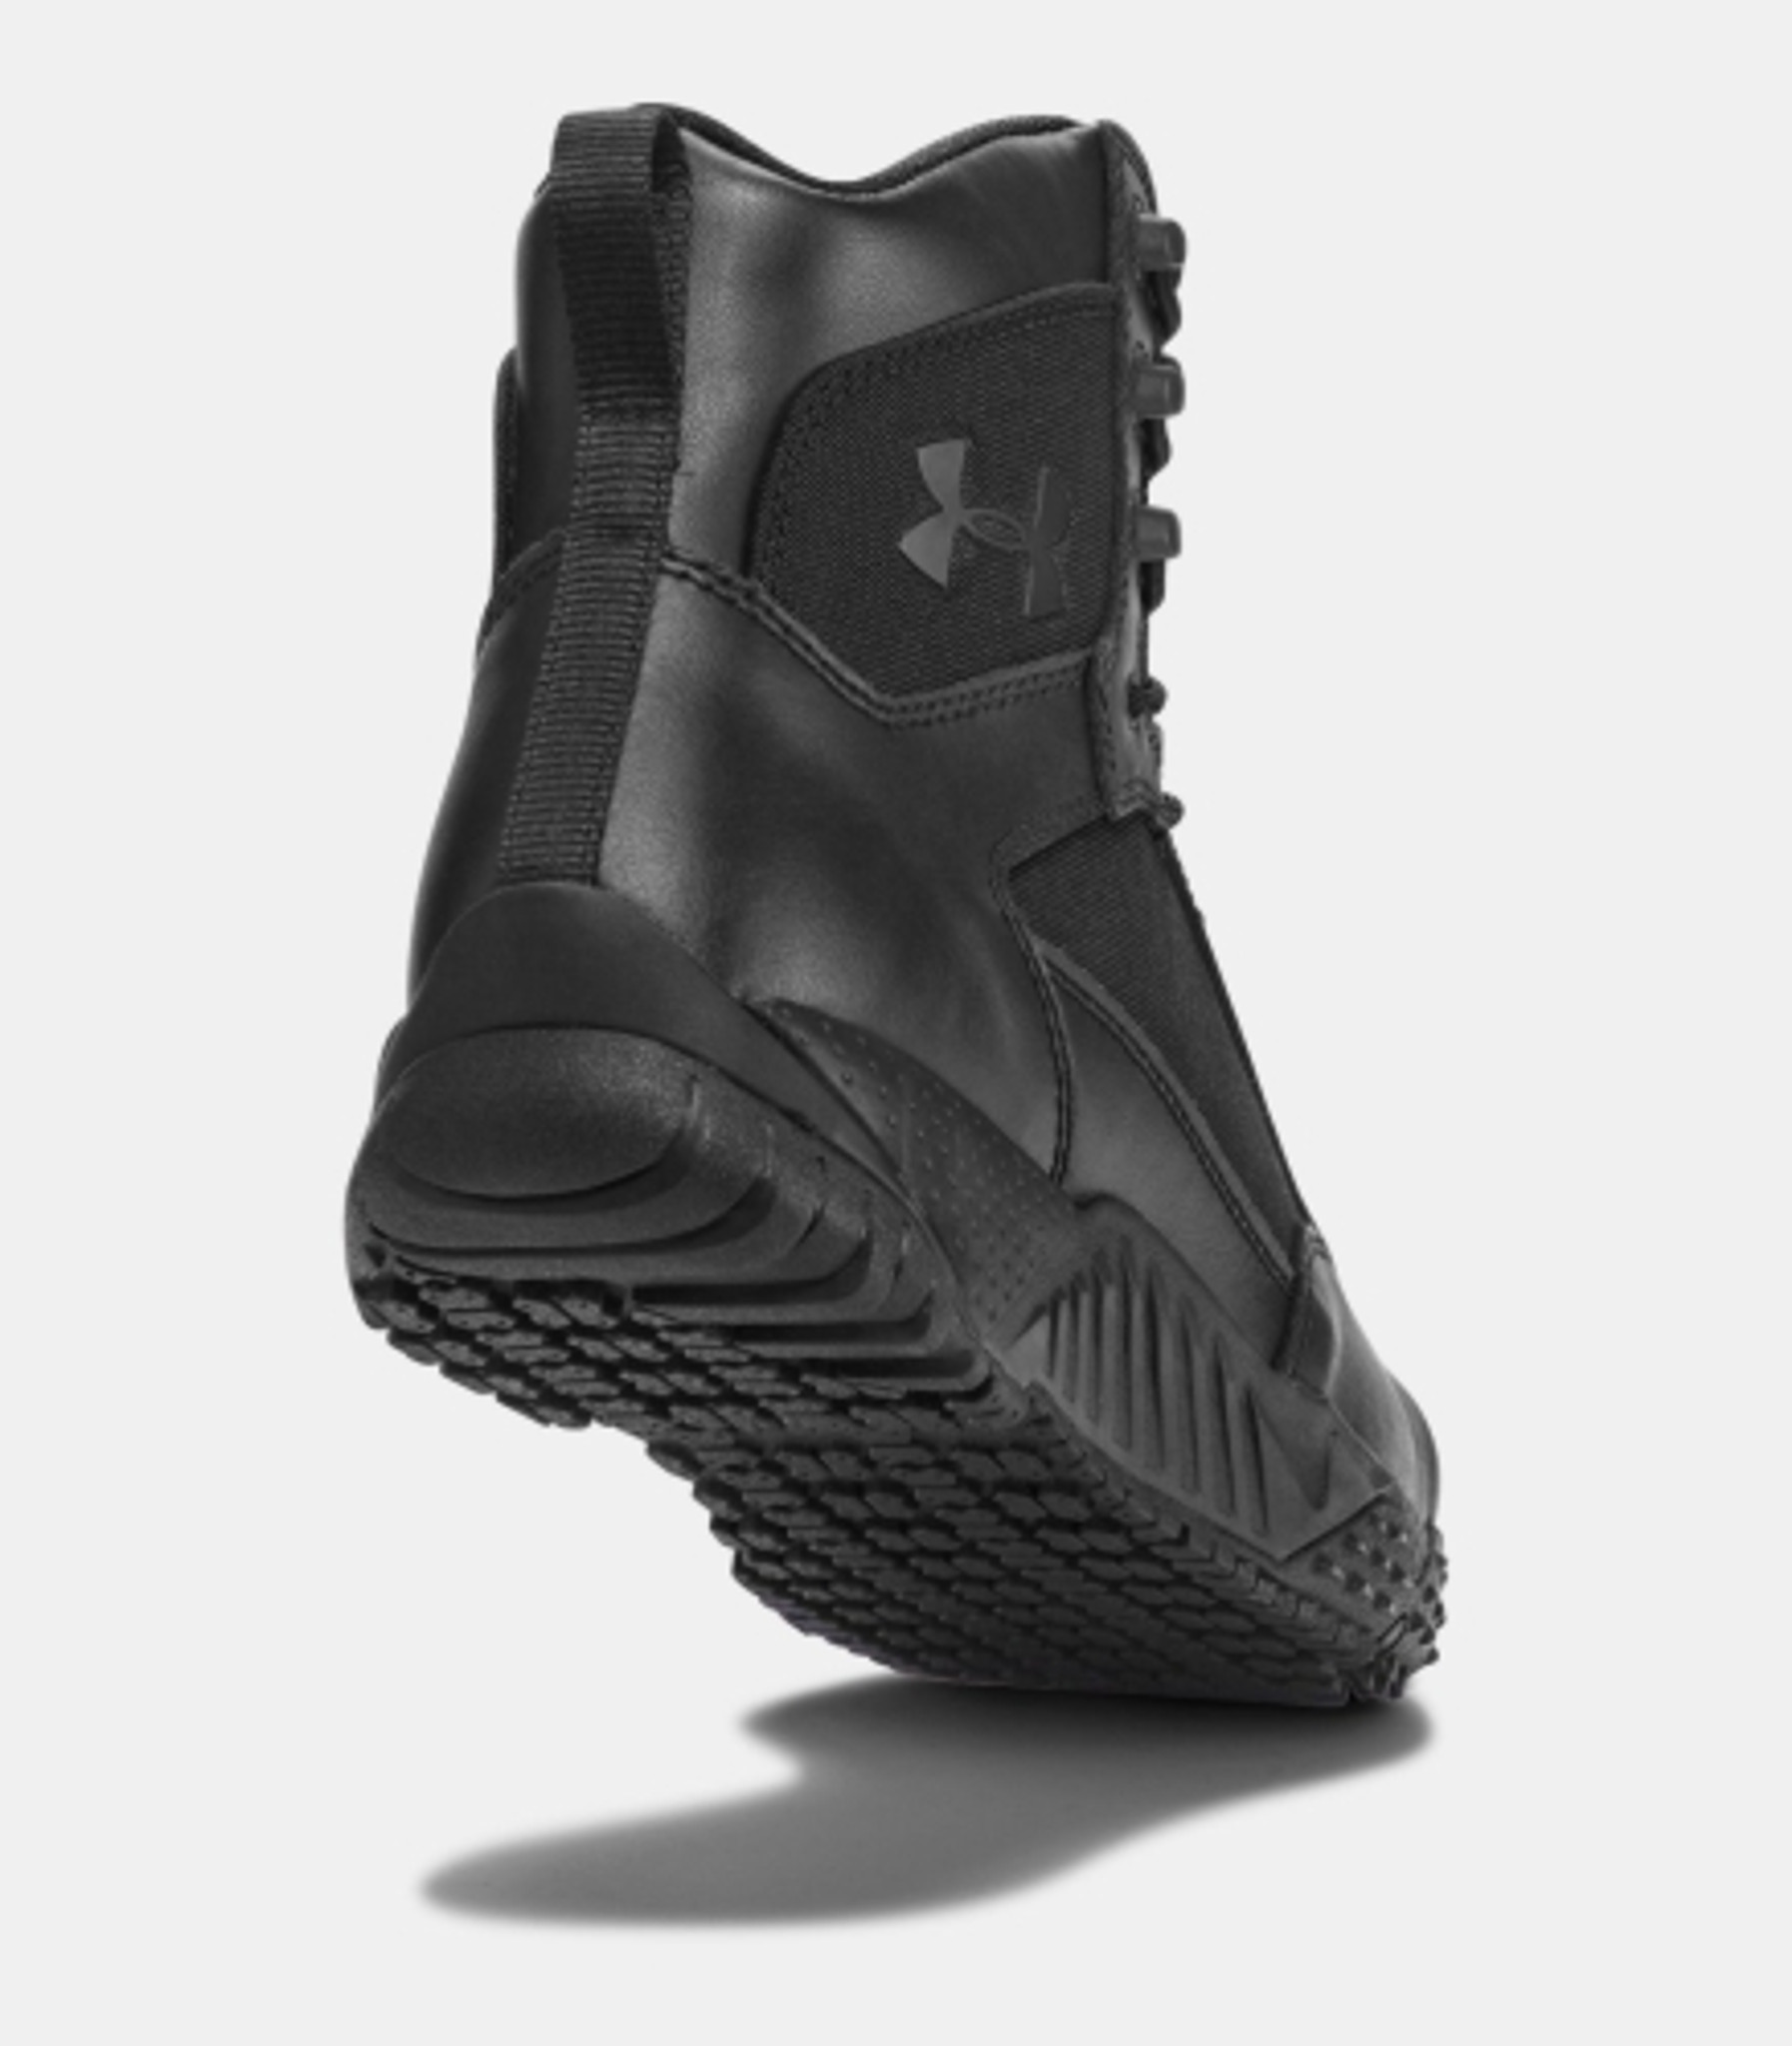 Under Armour Men/'s Stellar Tac Protect Boots Black Style 1276375-001